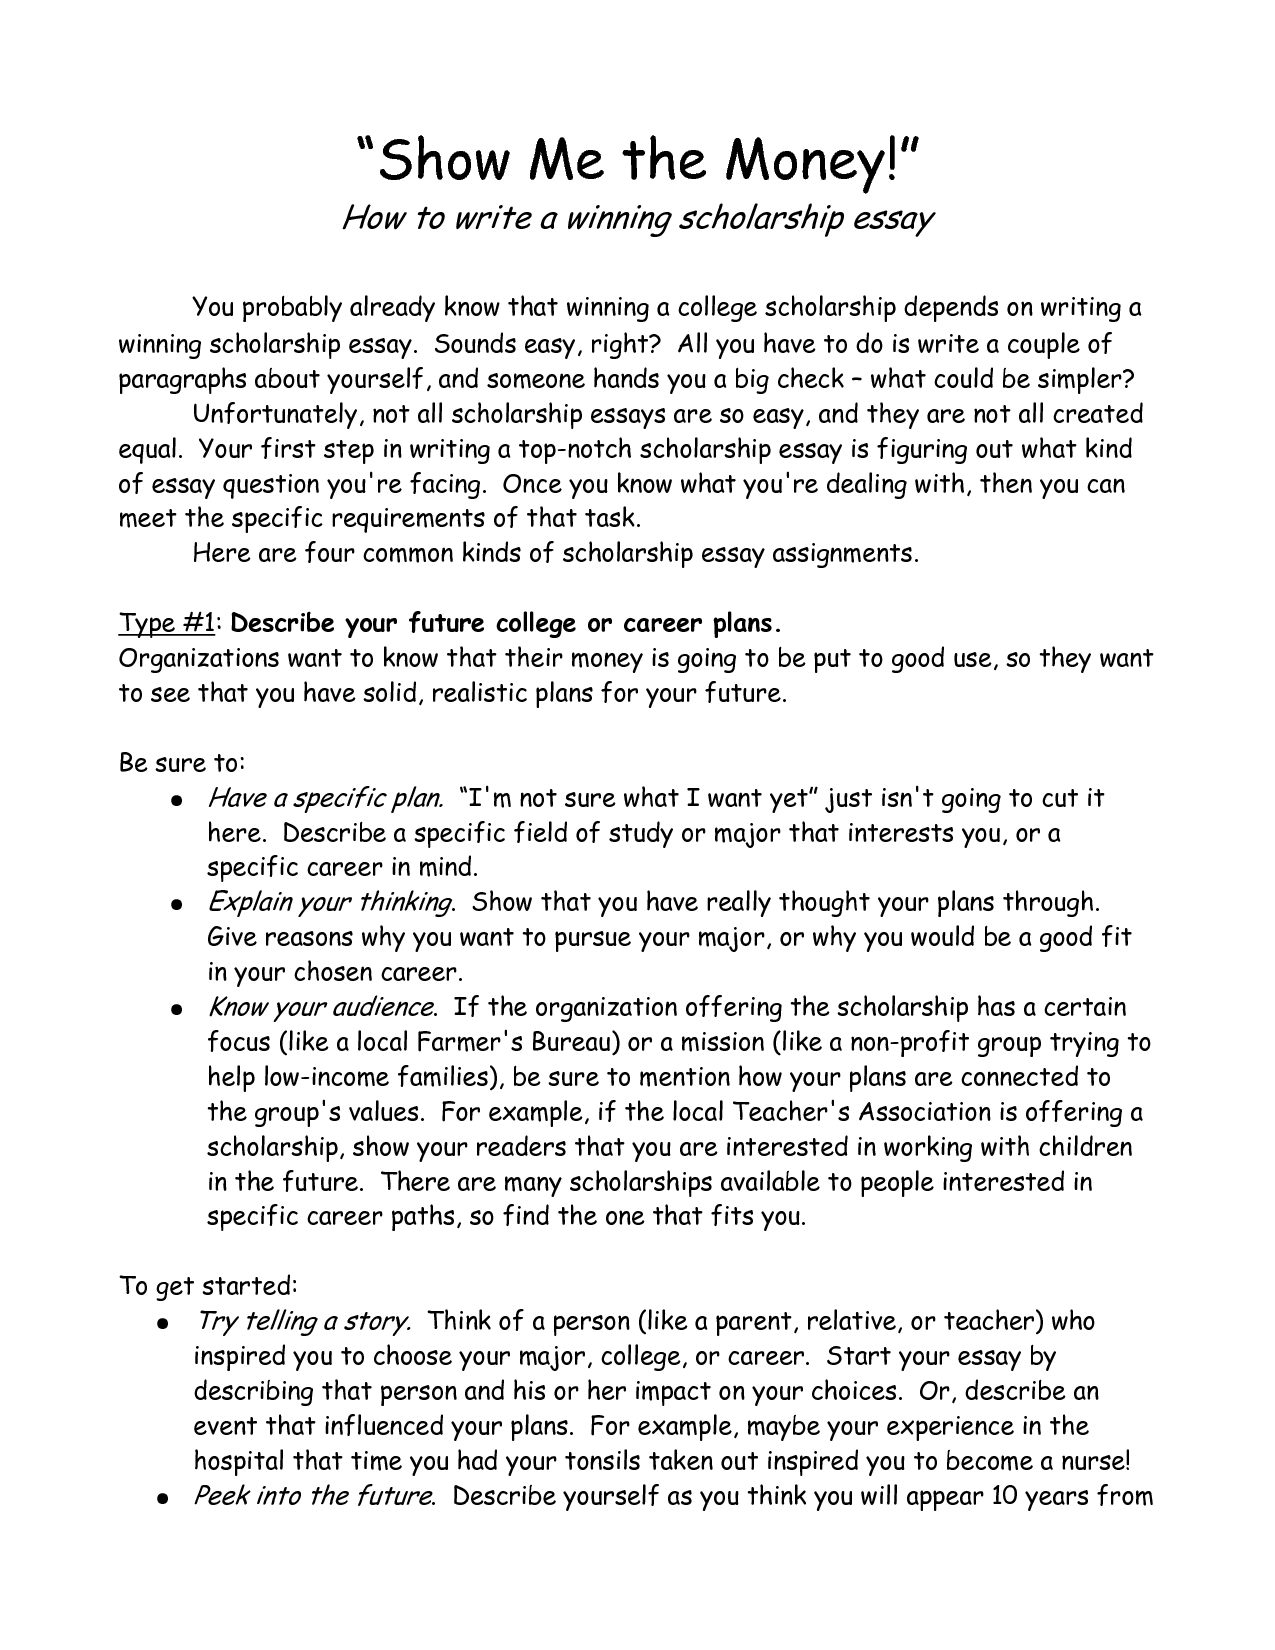 001 Scholarship Essay Phenomenal Prompts Ideas College Format Full